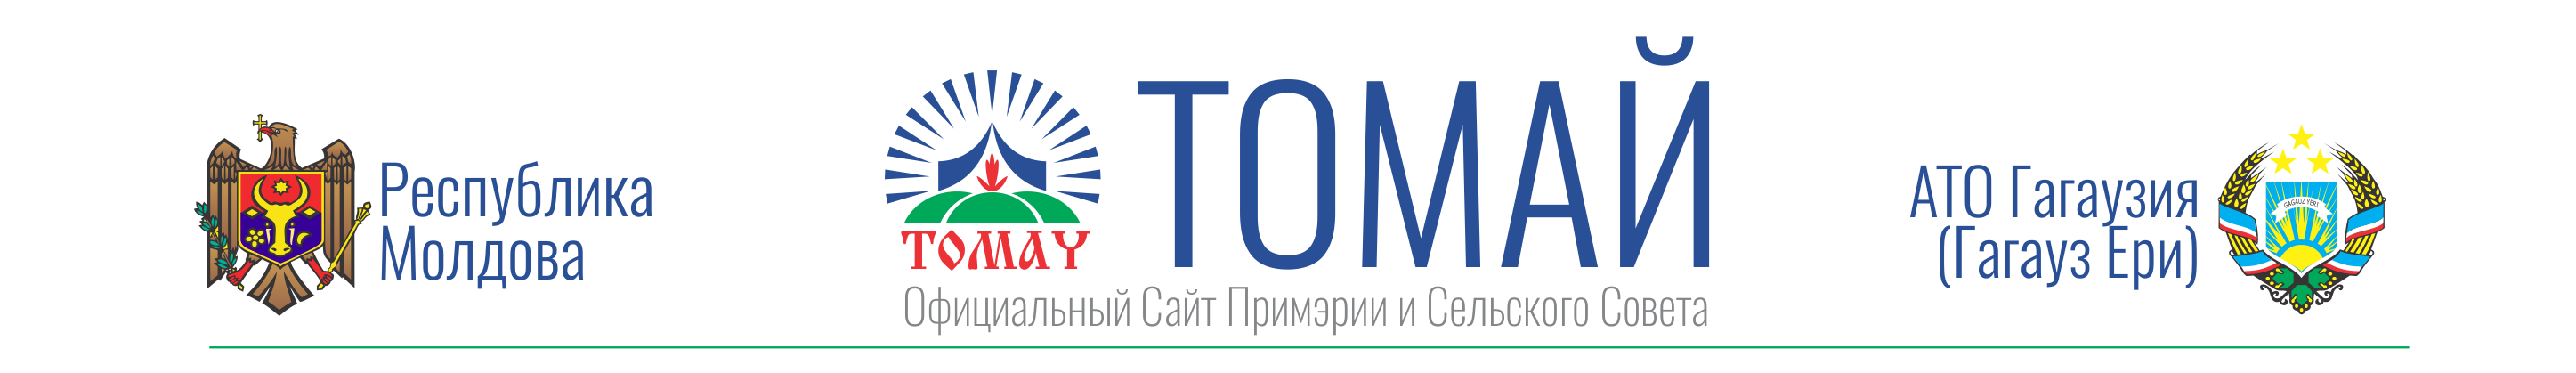 TOMAY.MD